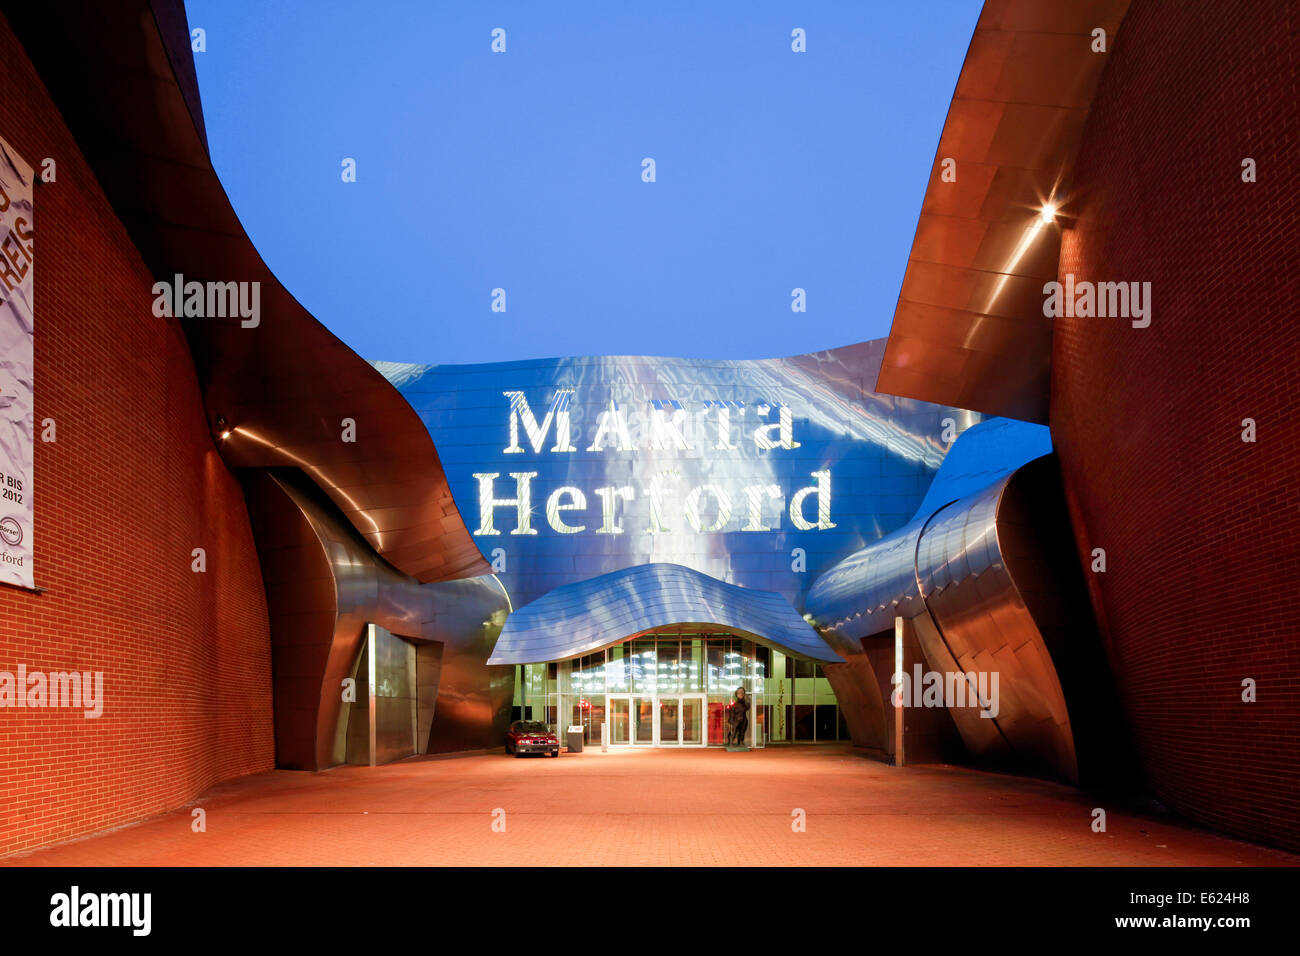 MARTa Herford, contemporary art and design museum of 21st century, by architect Frank O. Gehry, Herford, Westphalia - Stock Image